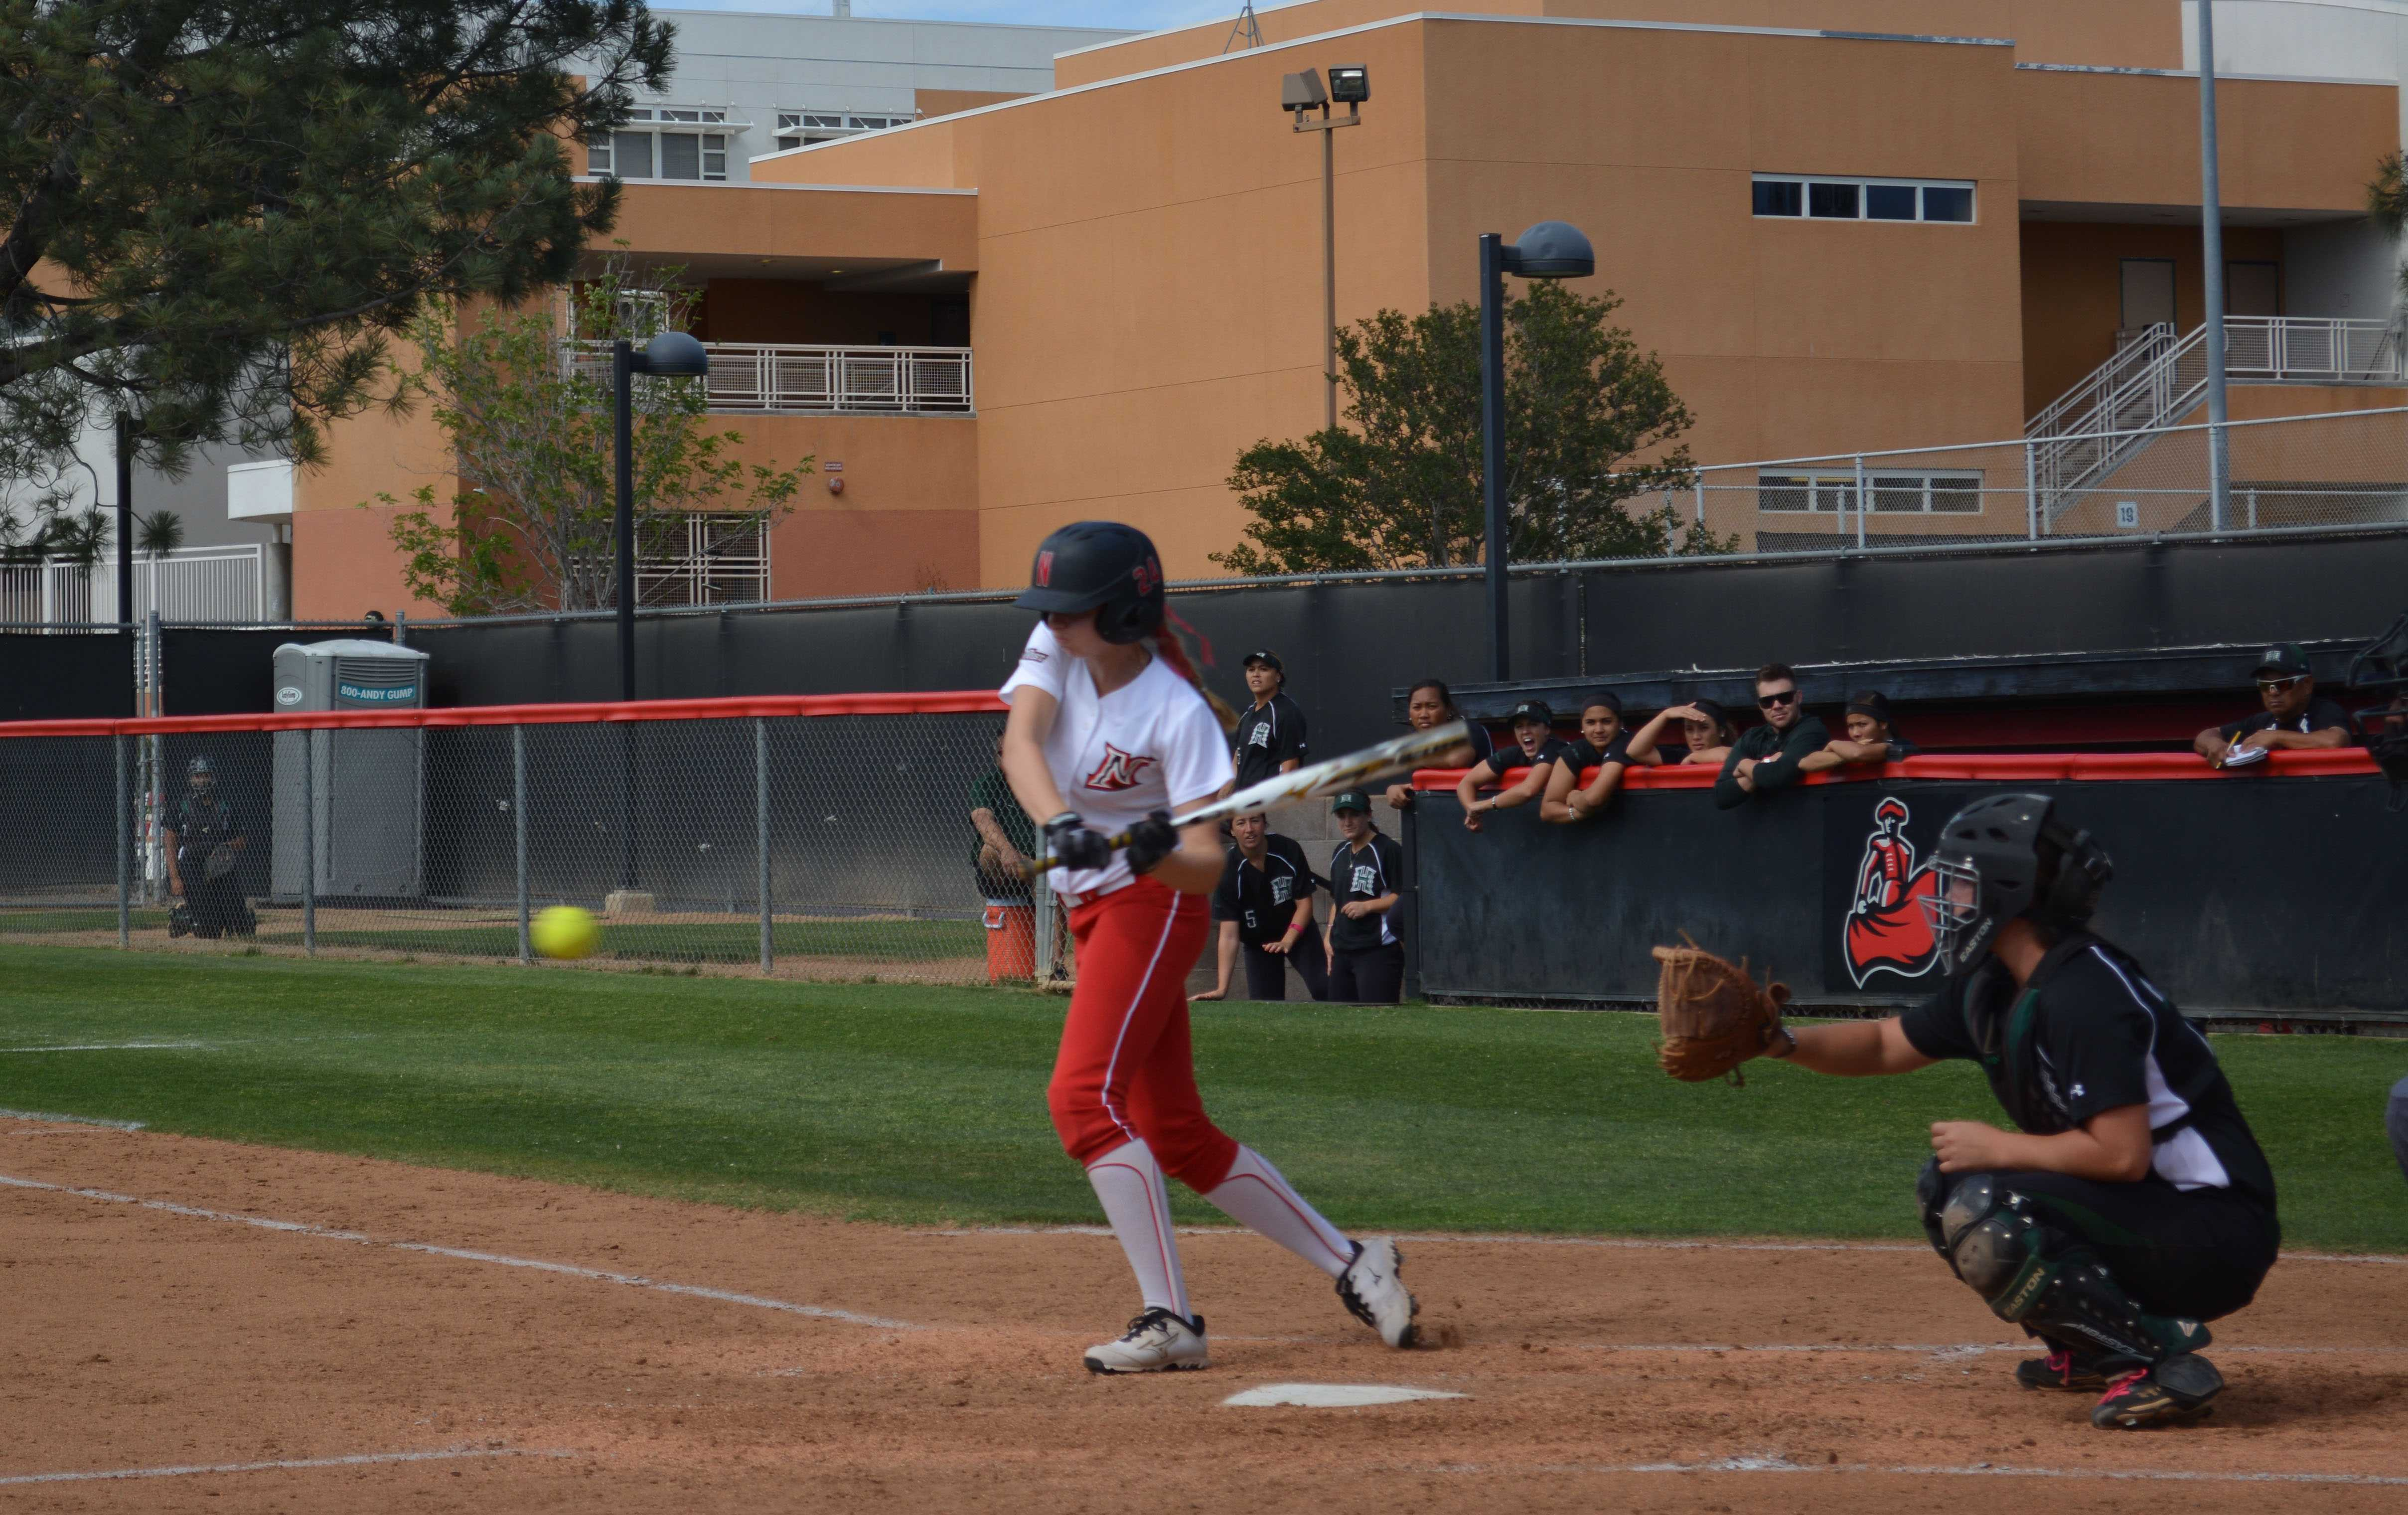 CSUN+Senior+Kaitlin+Toerner+prepares+to+bunt+an+incoming+ball.+Emily+Pierce%2FContributor